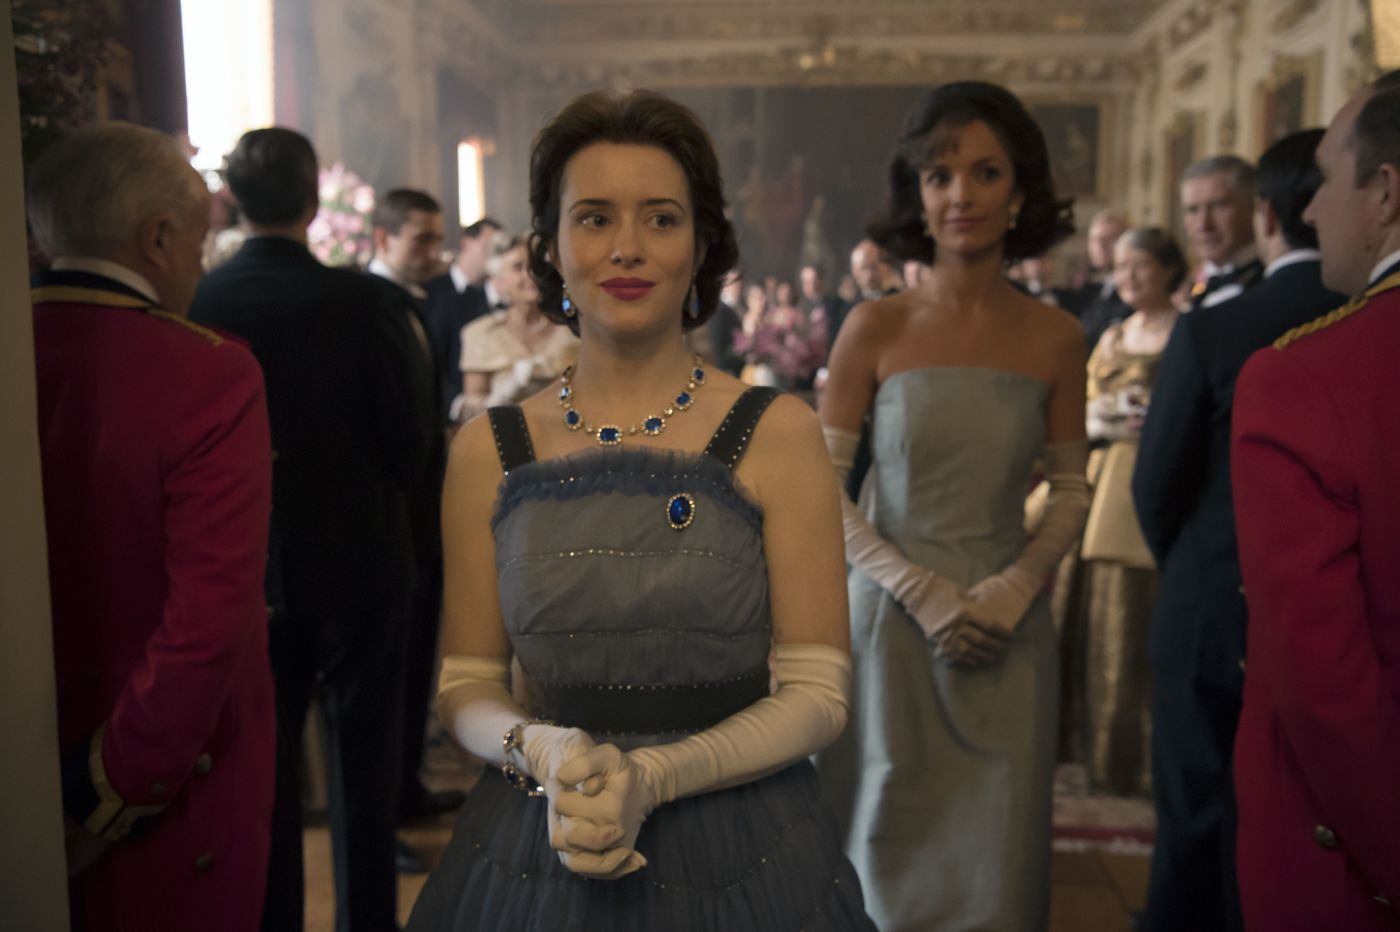 'The Crown' costumes come to Winterthur: How TV experiences extend beyond the screen